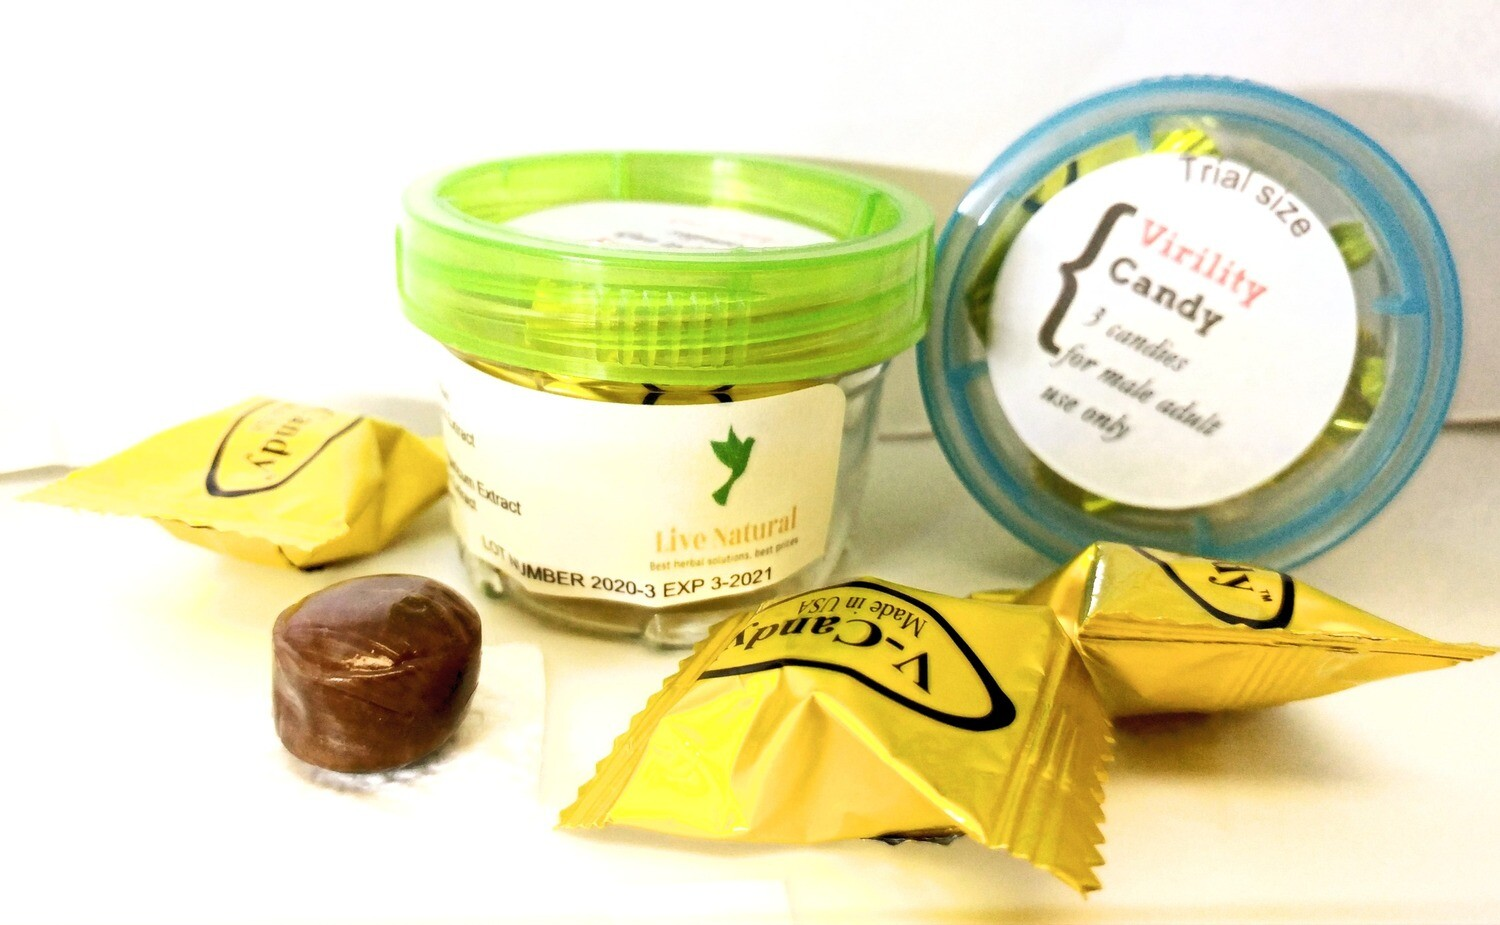 Virility Candy trial size for ED-comes with 3 Candies